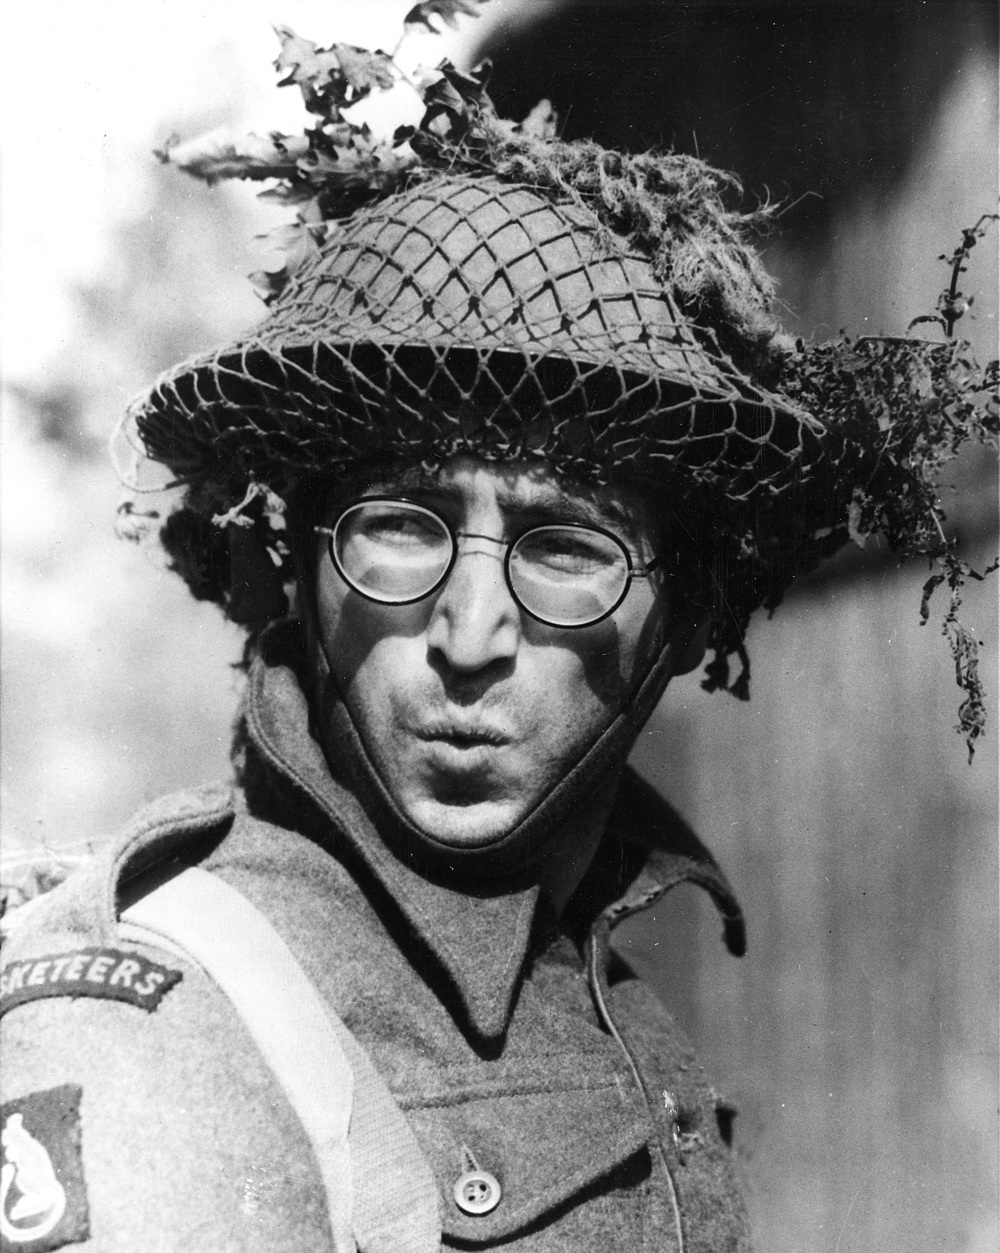 John Lennon on the set of How I Won the War as Private Gripweed, 1966.